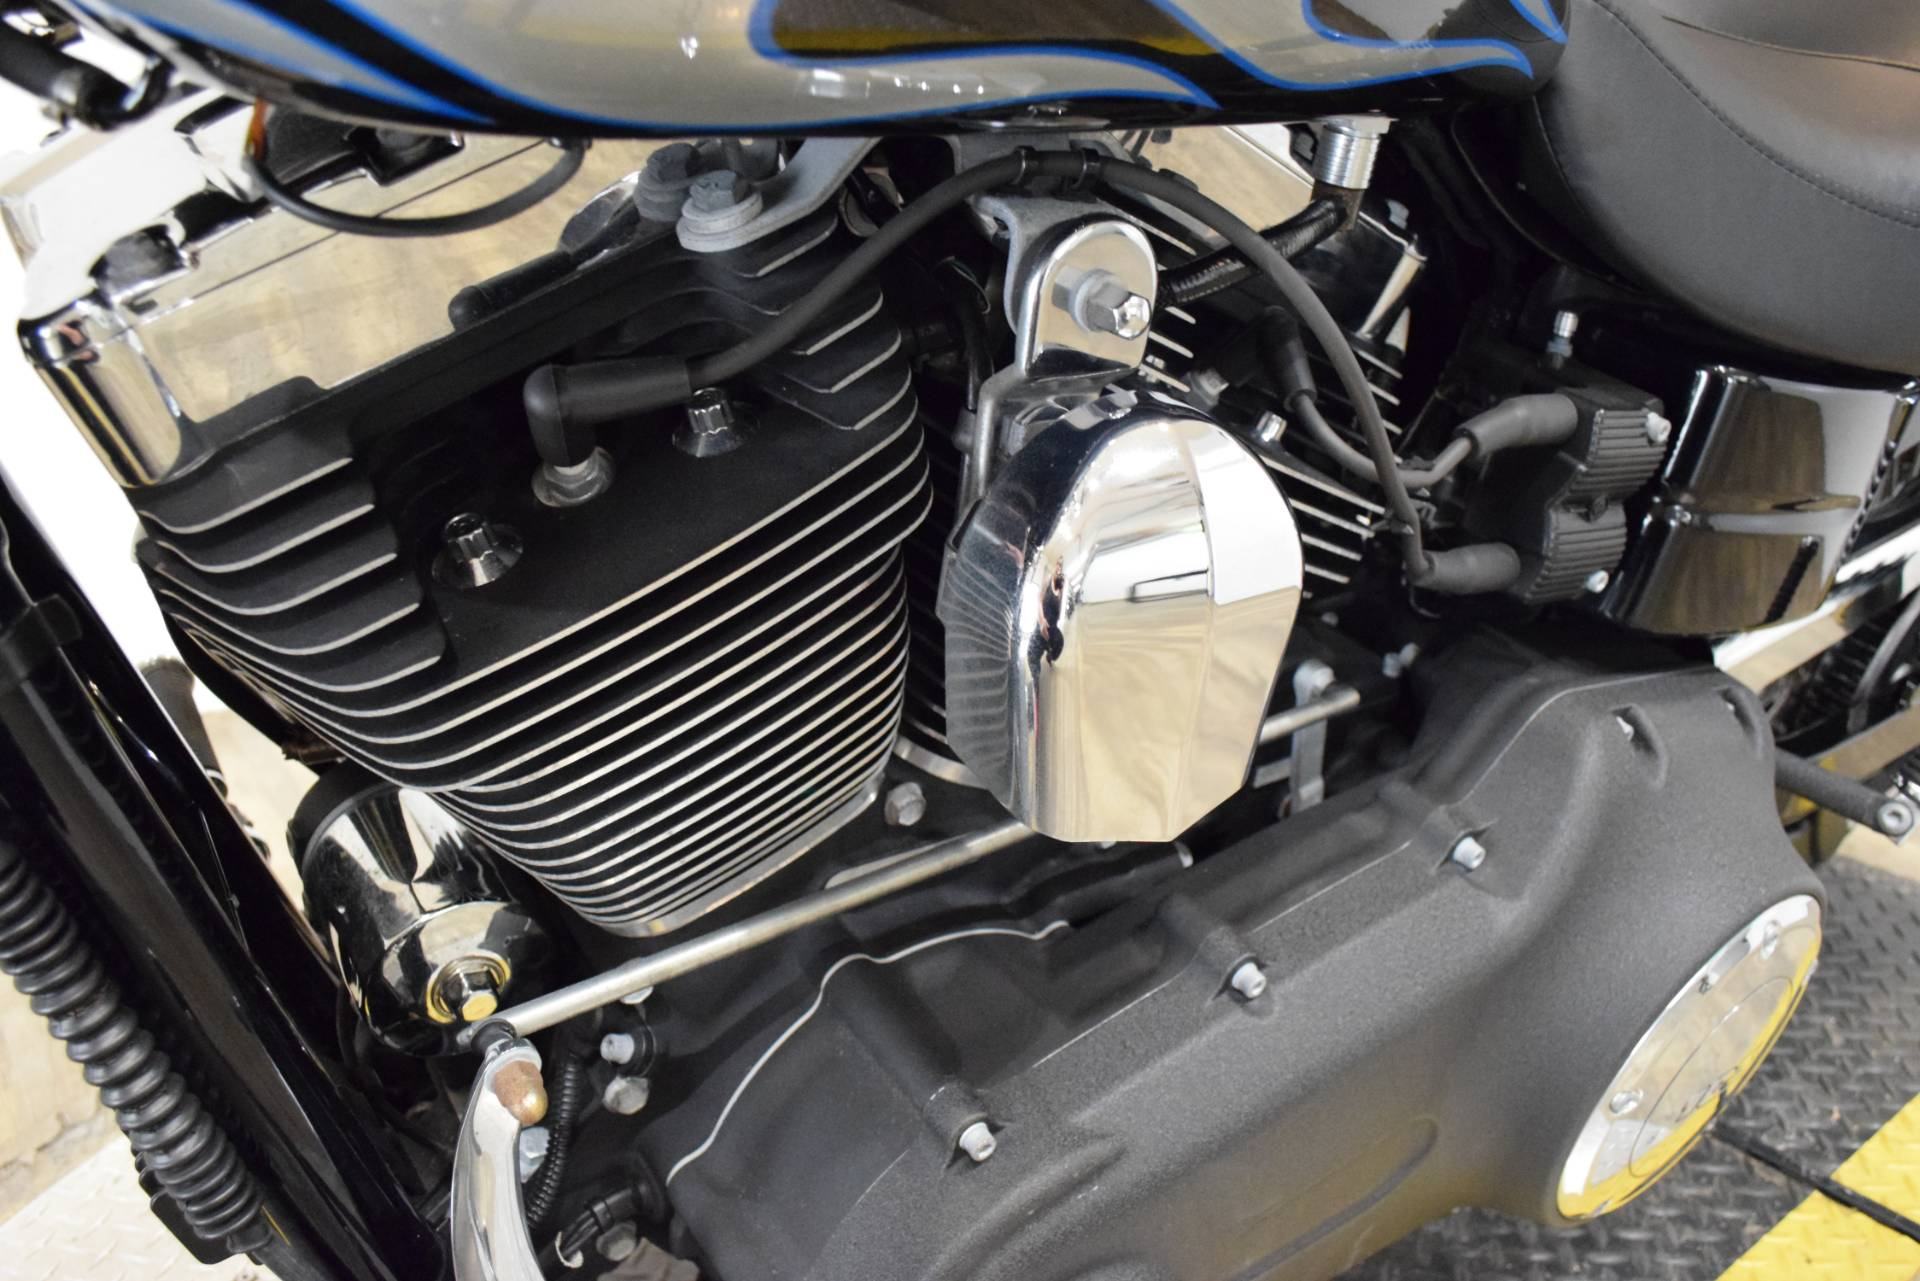 2013 Harley-Davidson Dyna® Wide Glide® in Wauconda, Illinois - Photo 20